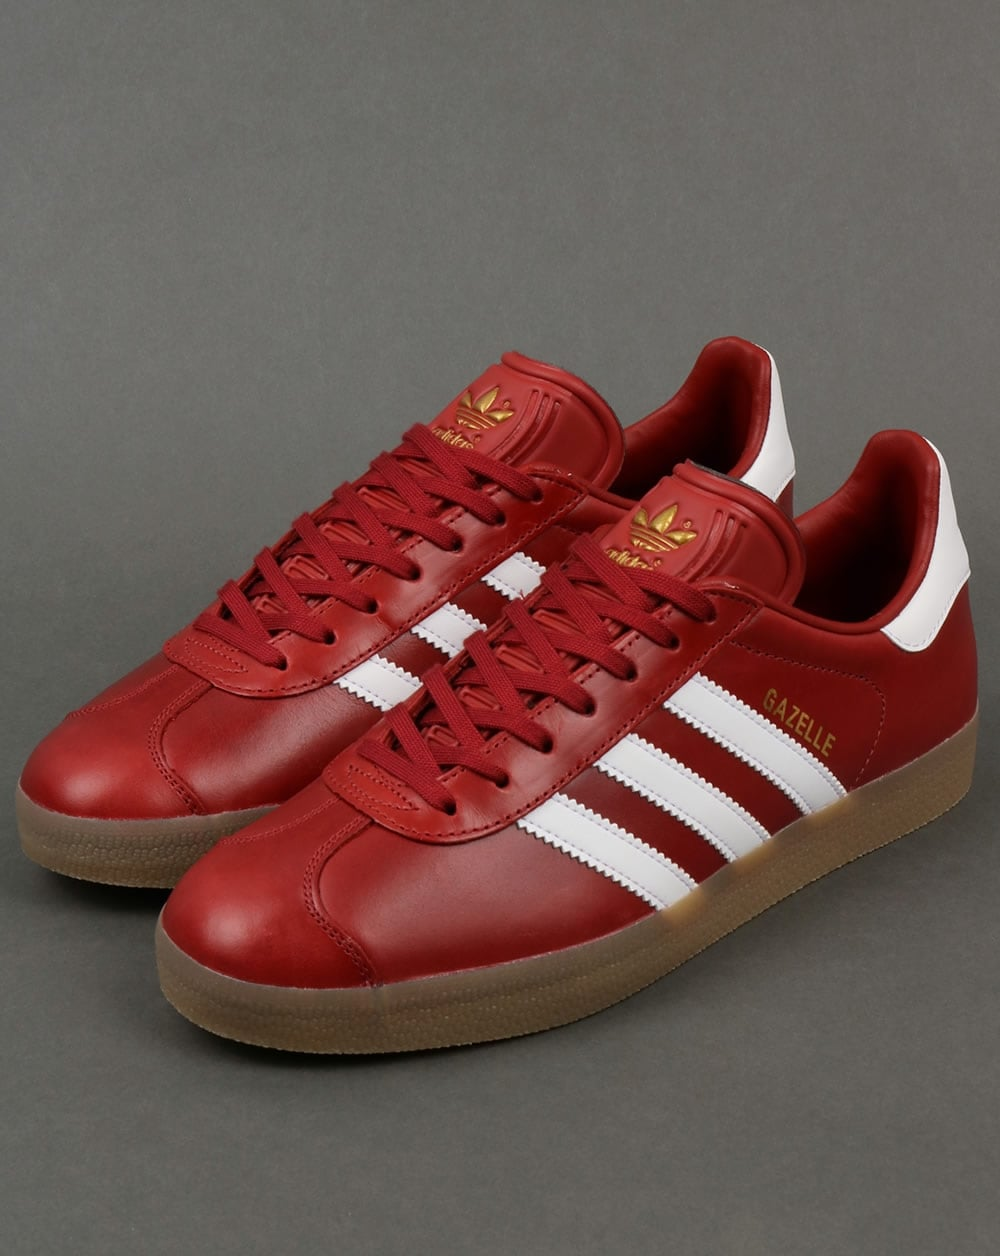 Adidas Gazelle, Trainers, Leather, Oxblood, Red, Originals ...